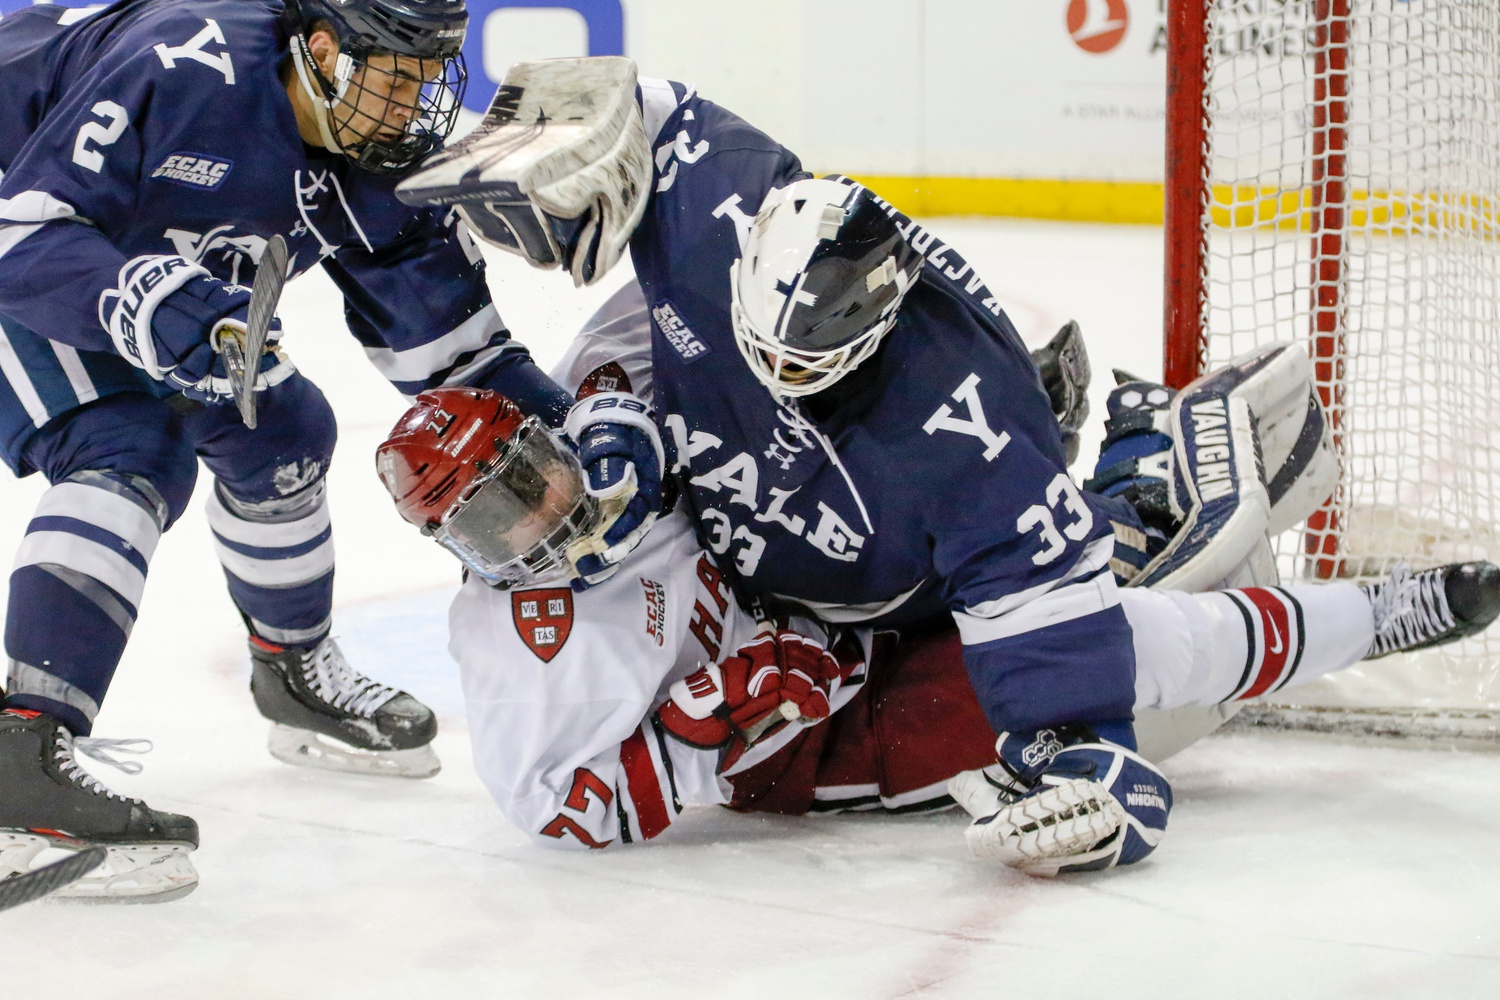 Yale net-minder Corbin Kaczperski let his frustration get the best of him when he piled on — and threw punches at — Harvard freshman Henry Thrun late in the contest.